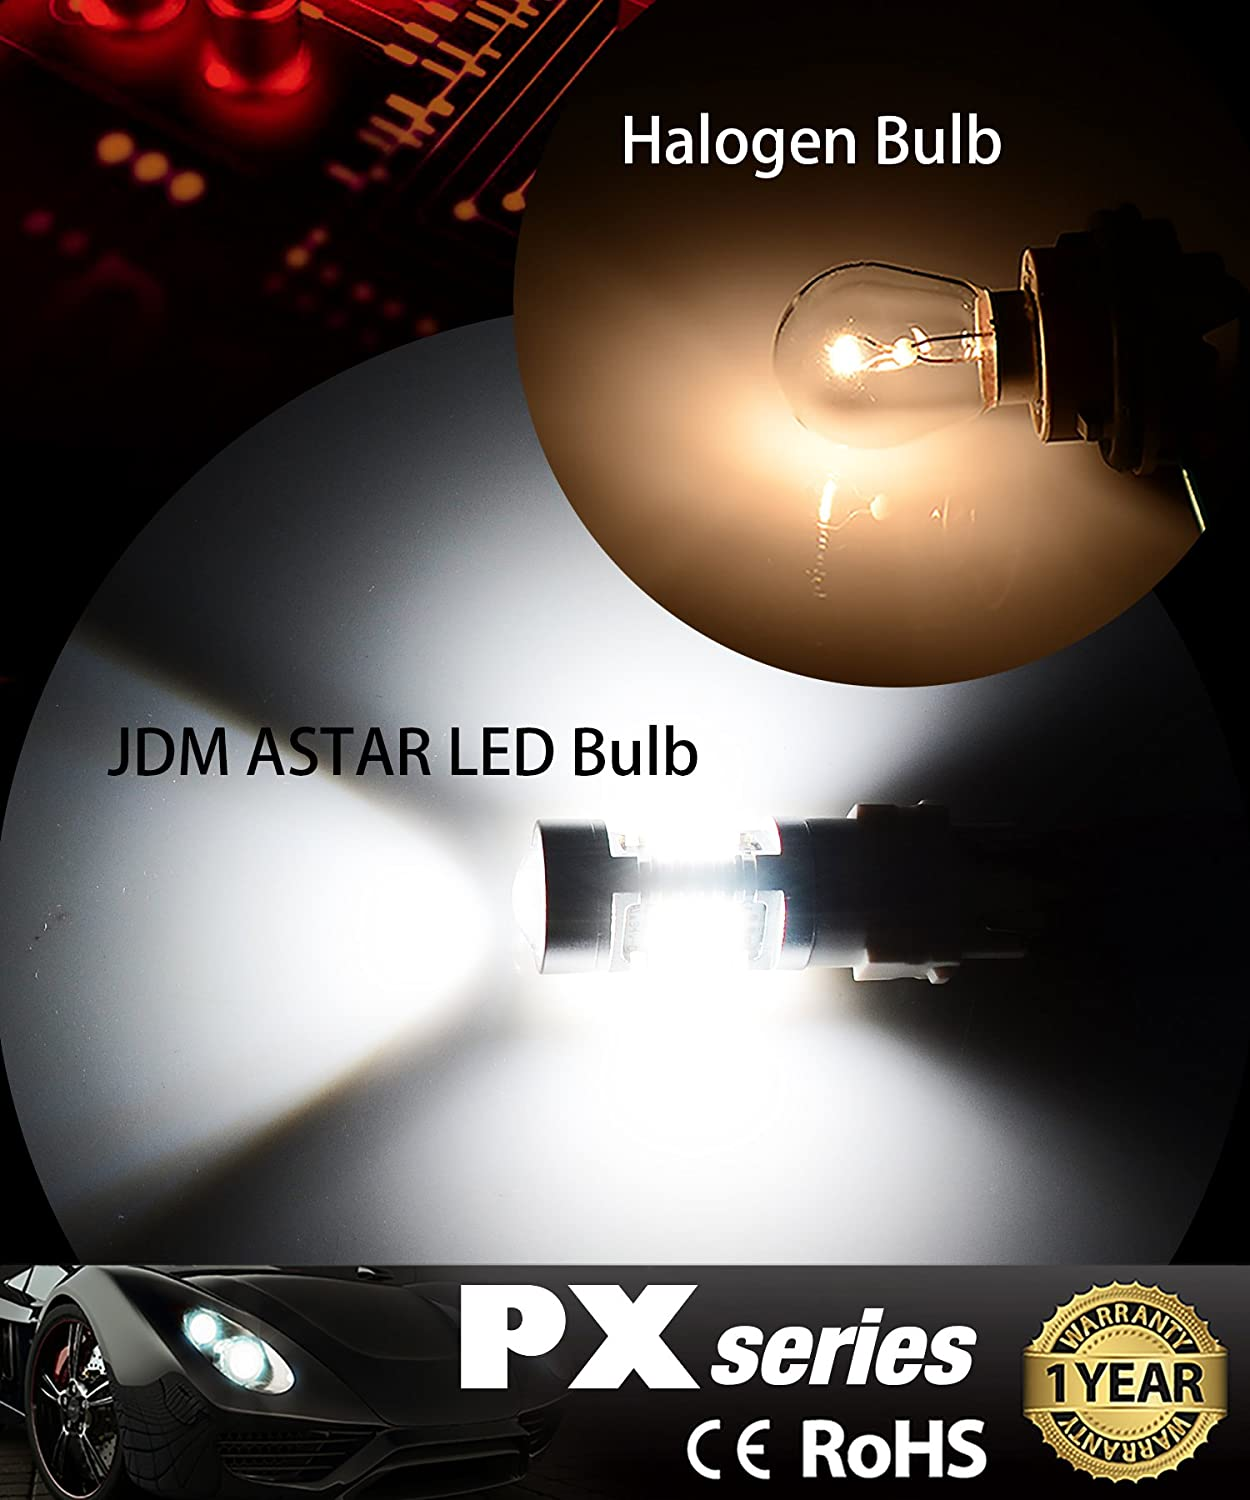 Xenon White 4336326517 JDM ASTAR 2520 Lumens Extremely Bright PX Chips H10 9140 9145 LED Fog Light Bulbs with Projector for DRL or Fog Lights